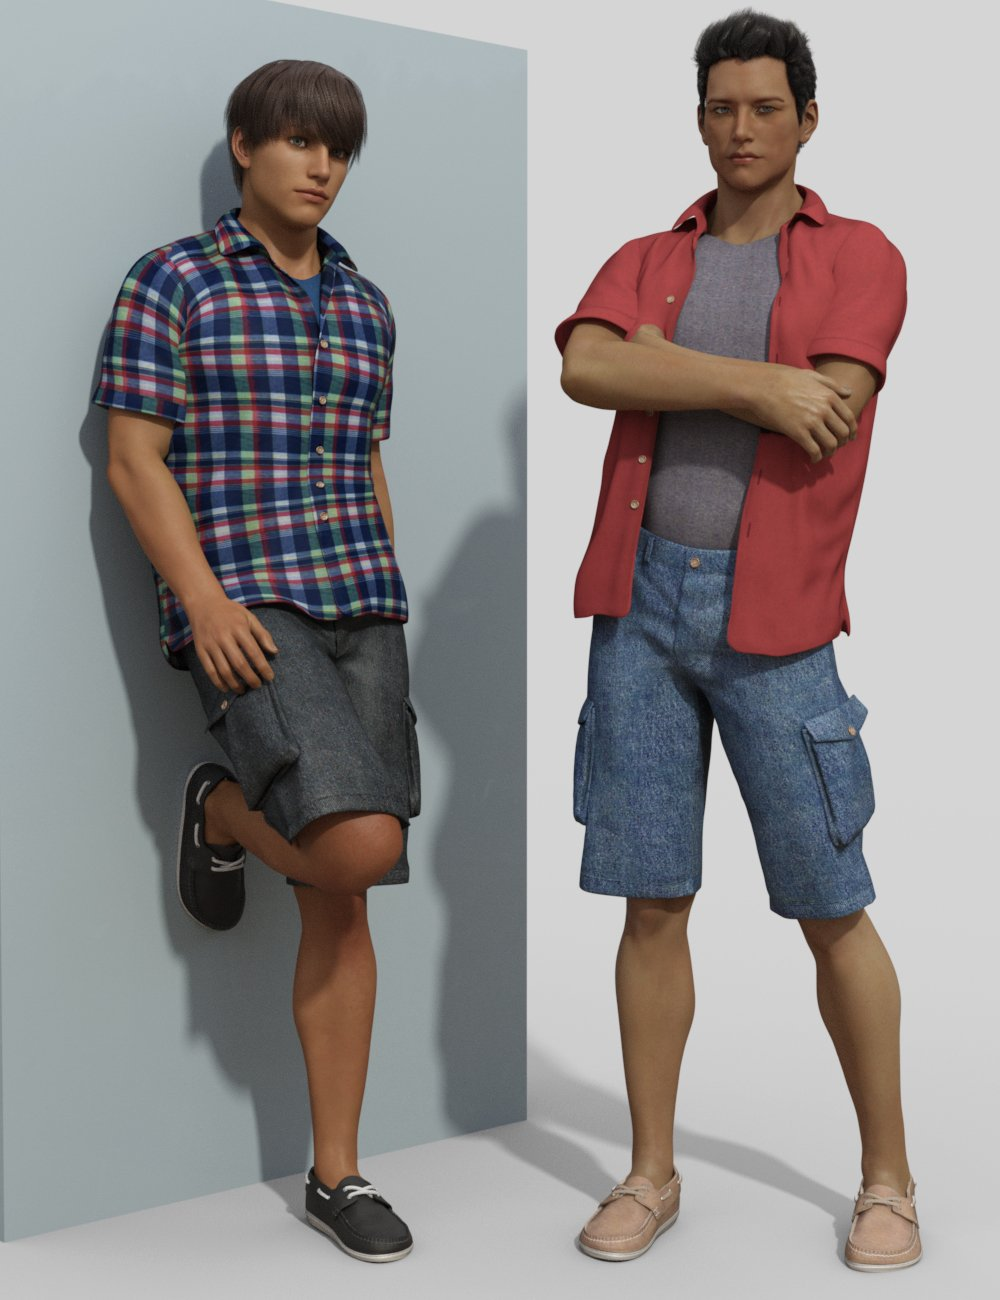 Just Josh Texture Pack by: SloshWerks, 3D Models by Daz 3D